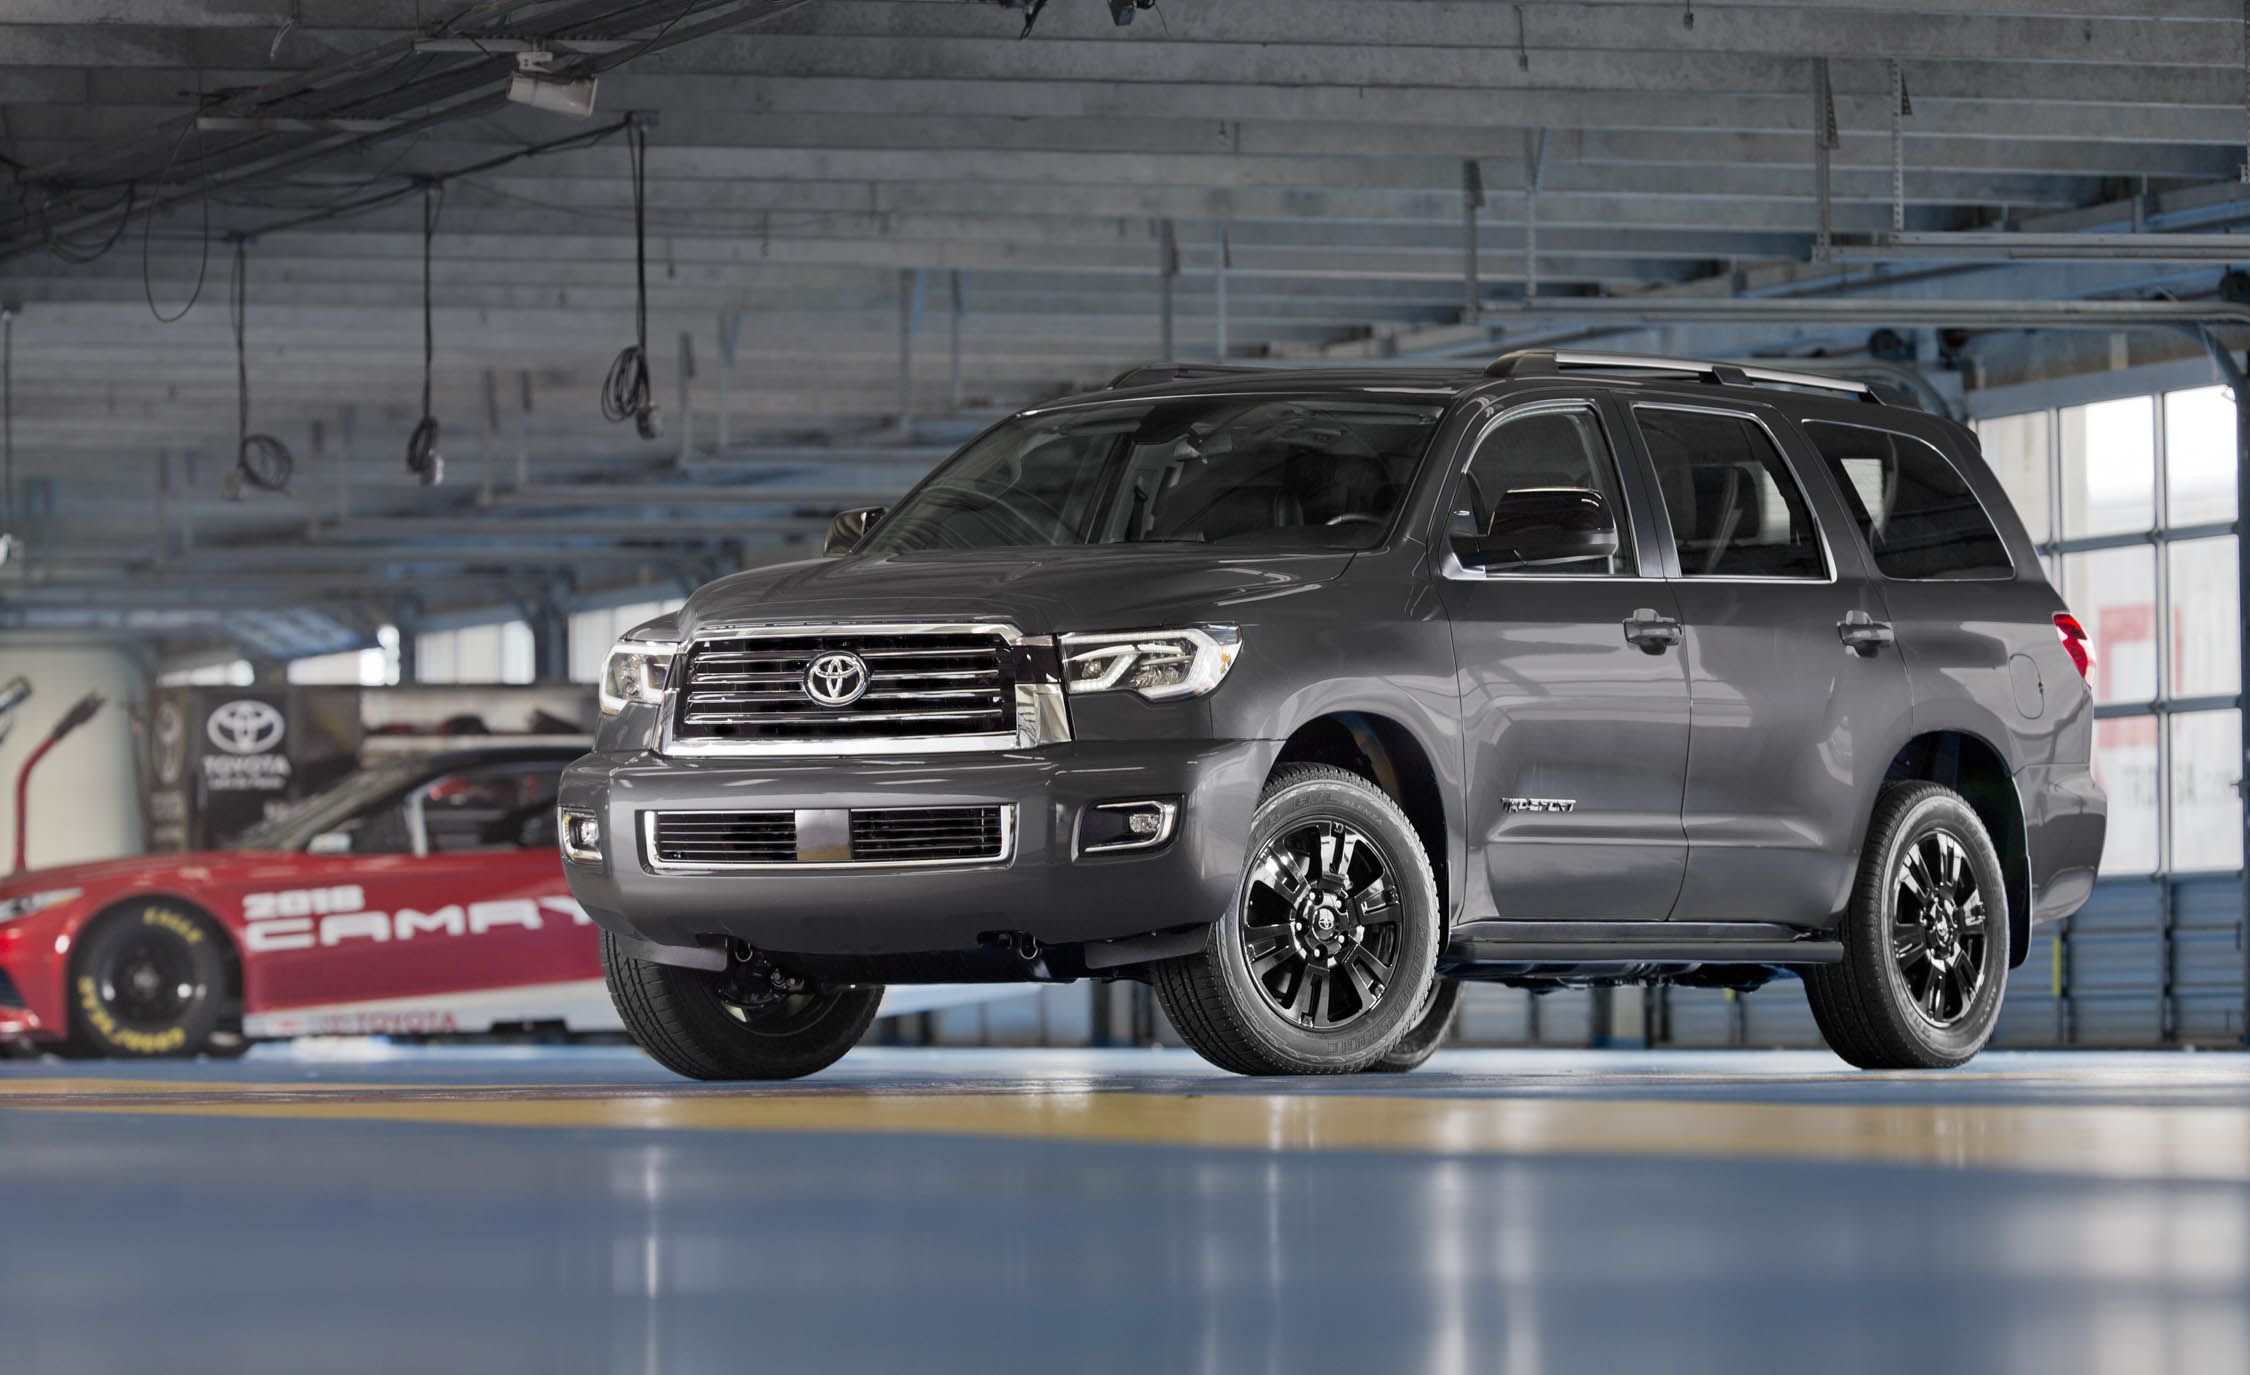 Big Hauling Every Full Size Suv Ranked From Worst To Best